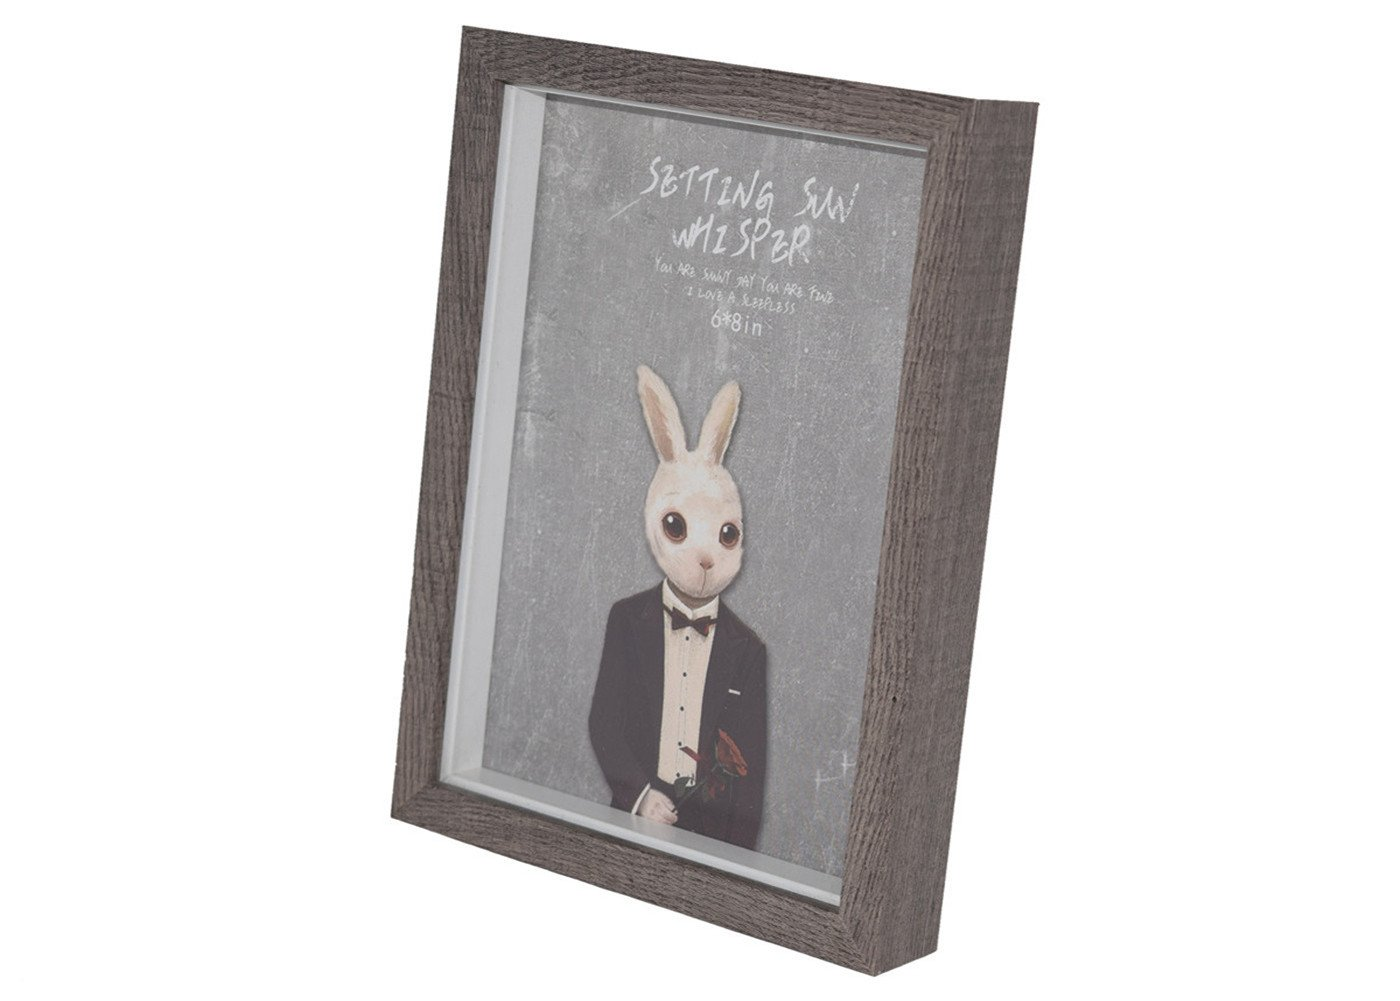 Kingsnow Wood Picture Frame, 6x8 Inch,